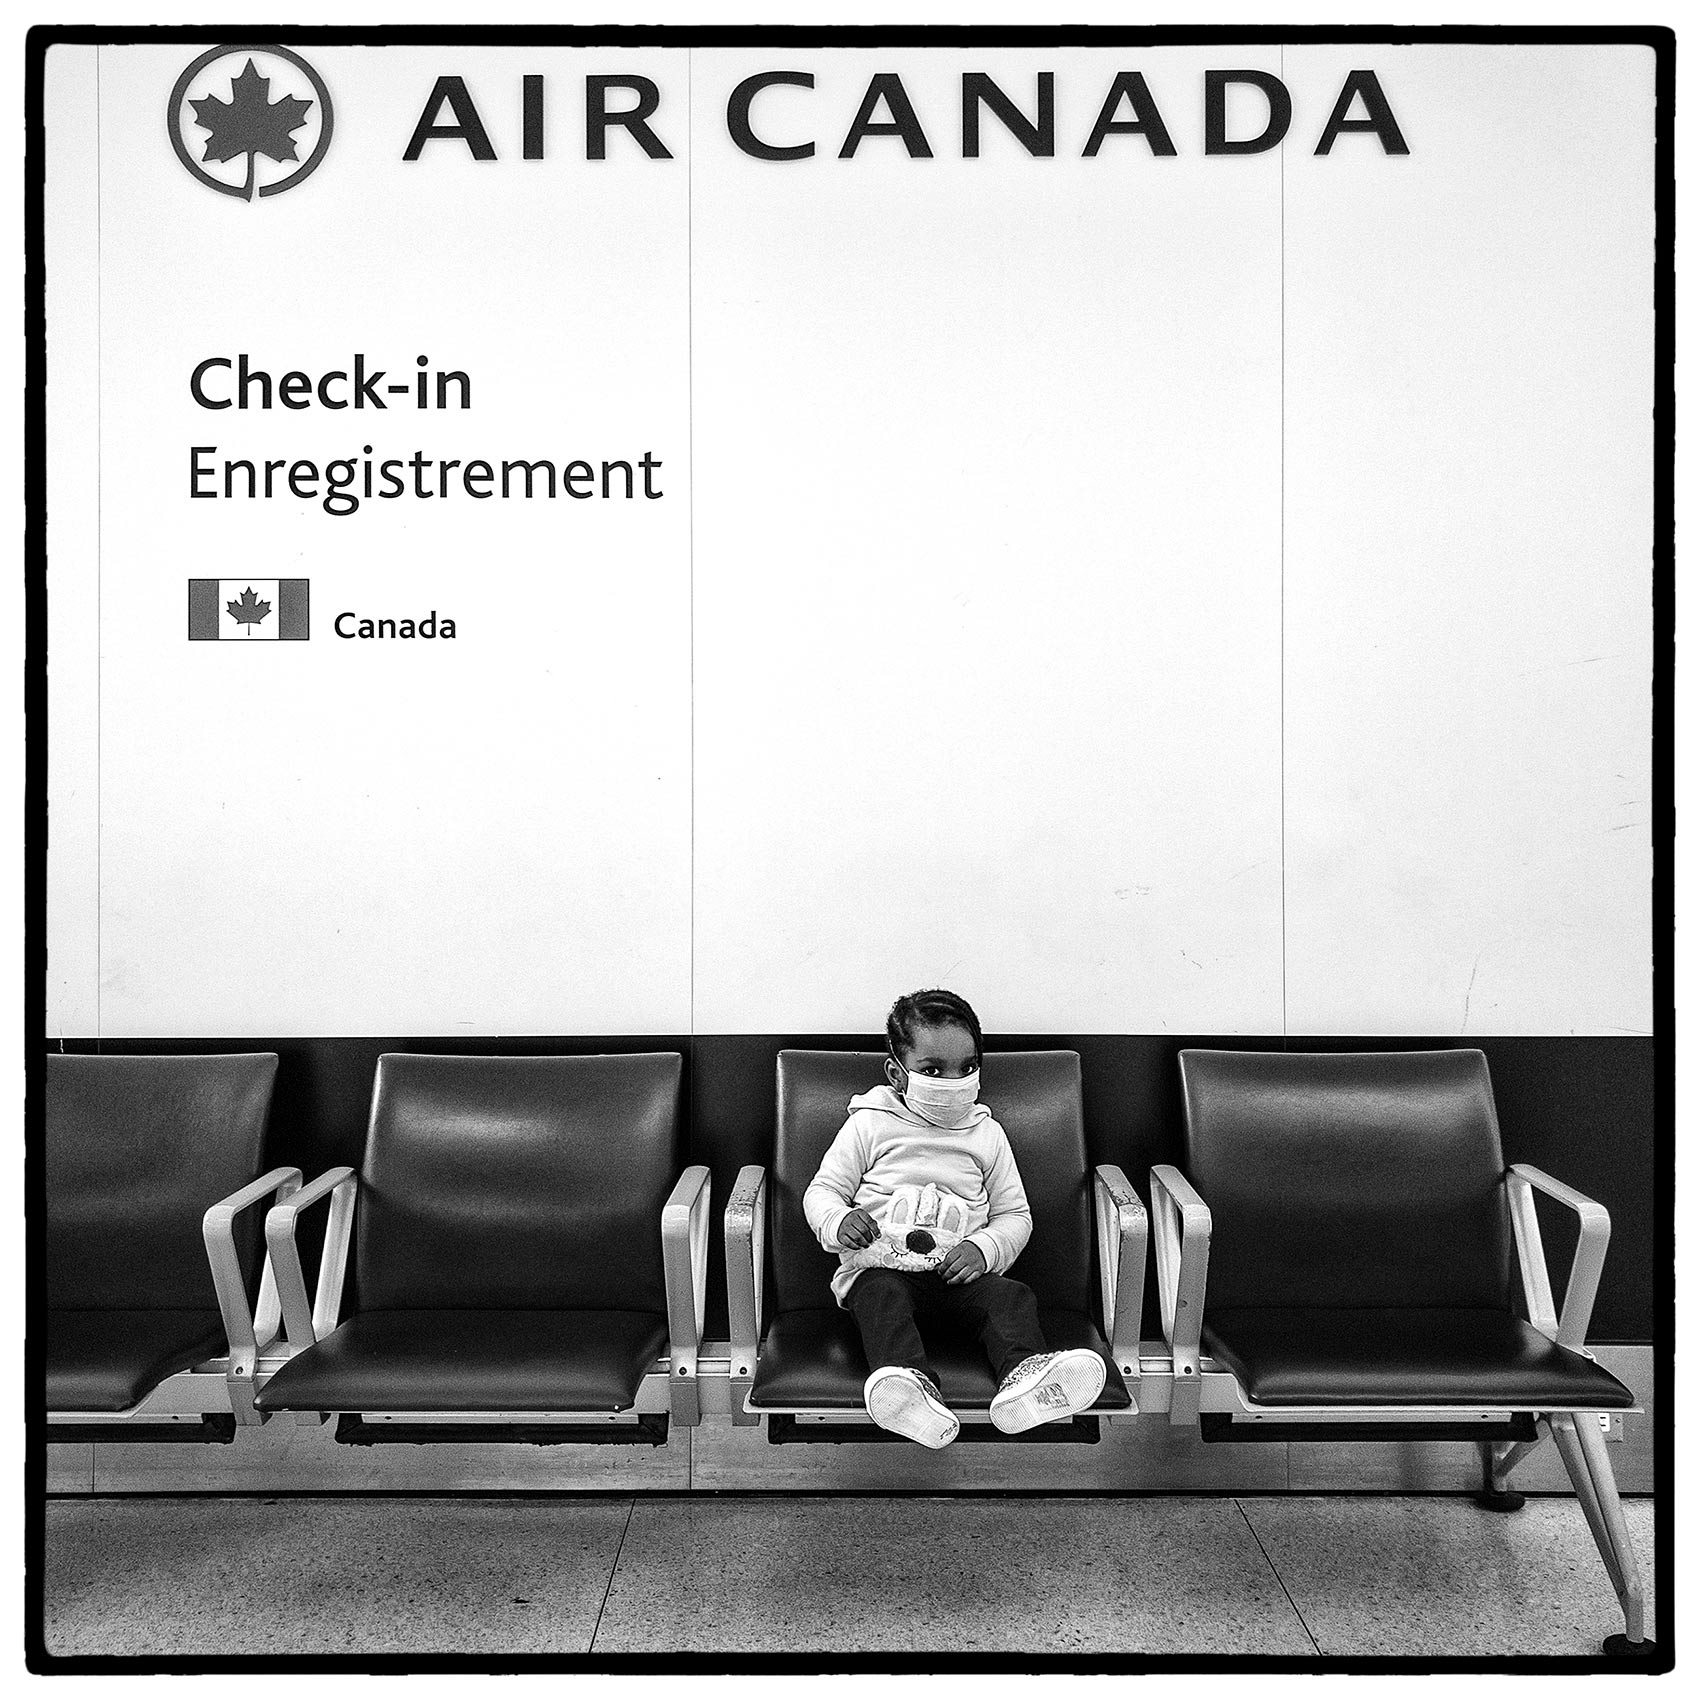 a-child-waits-for-her-flight-during-the-pandemic-at-toronto-pearson-by-john-hryniuk